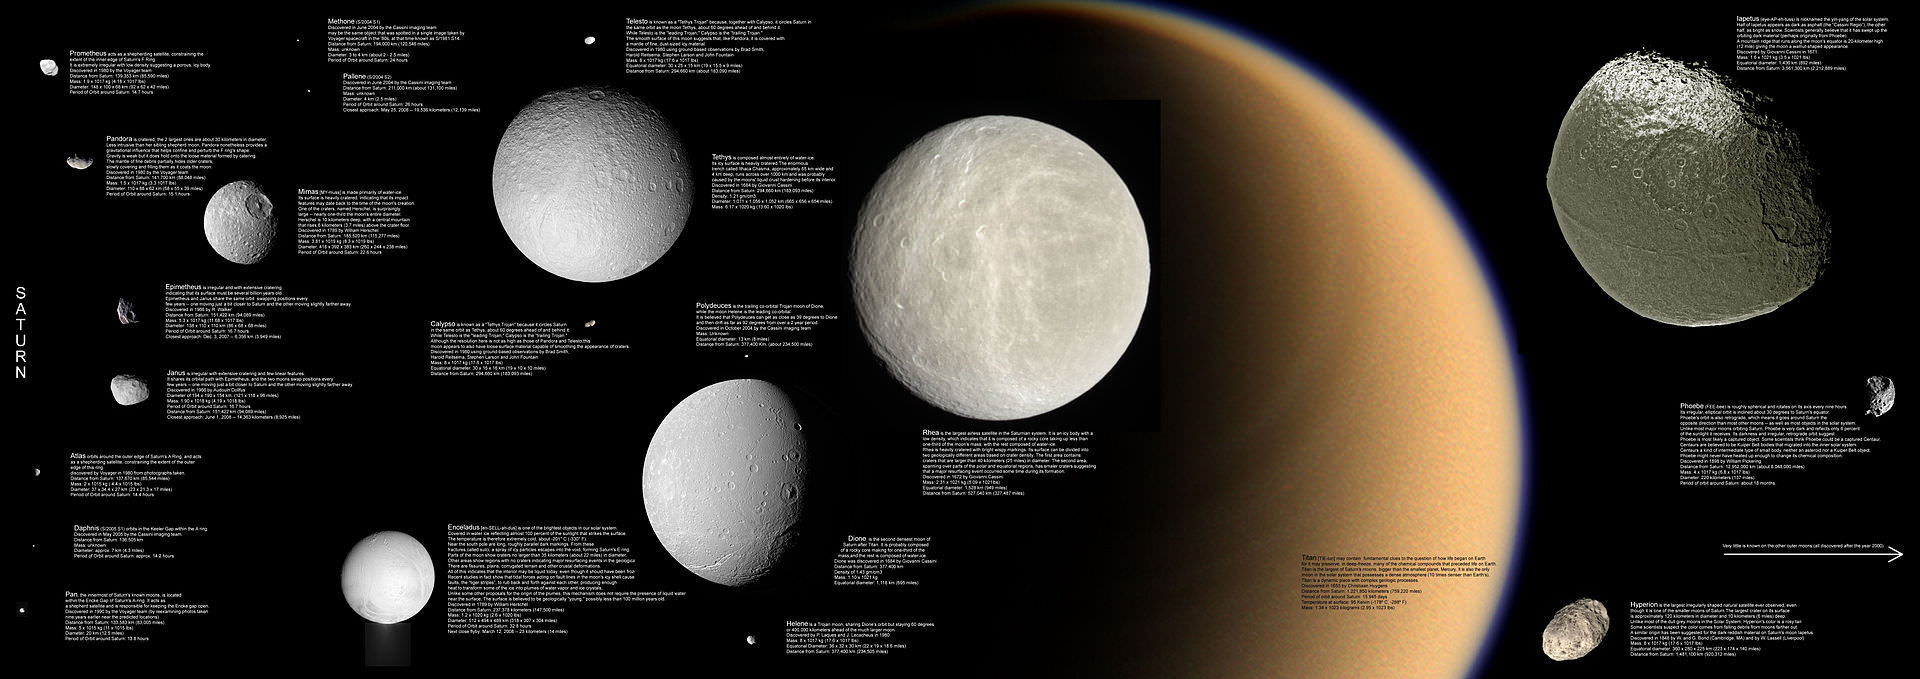 Cassini Mission To Saturn Diagram Of The Spacecraft Archives Universe Today Moons From Left Right Mimas Enceladus Tethys